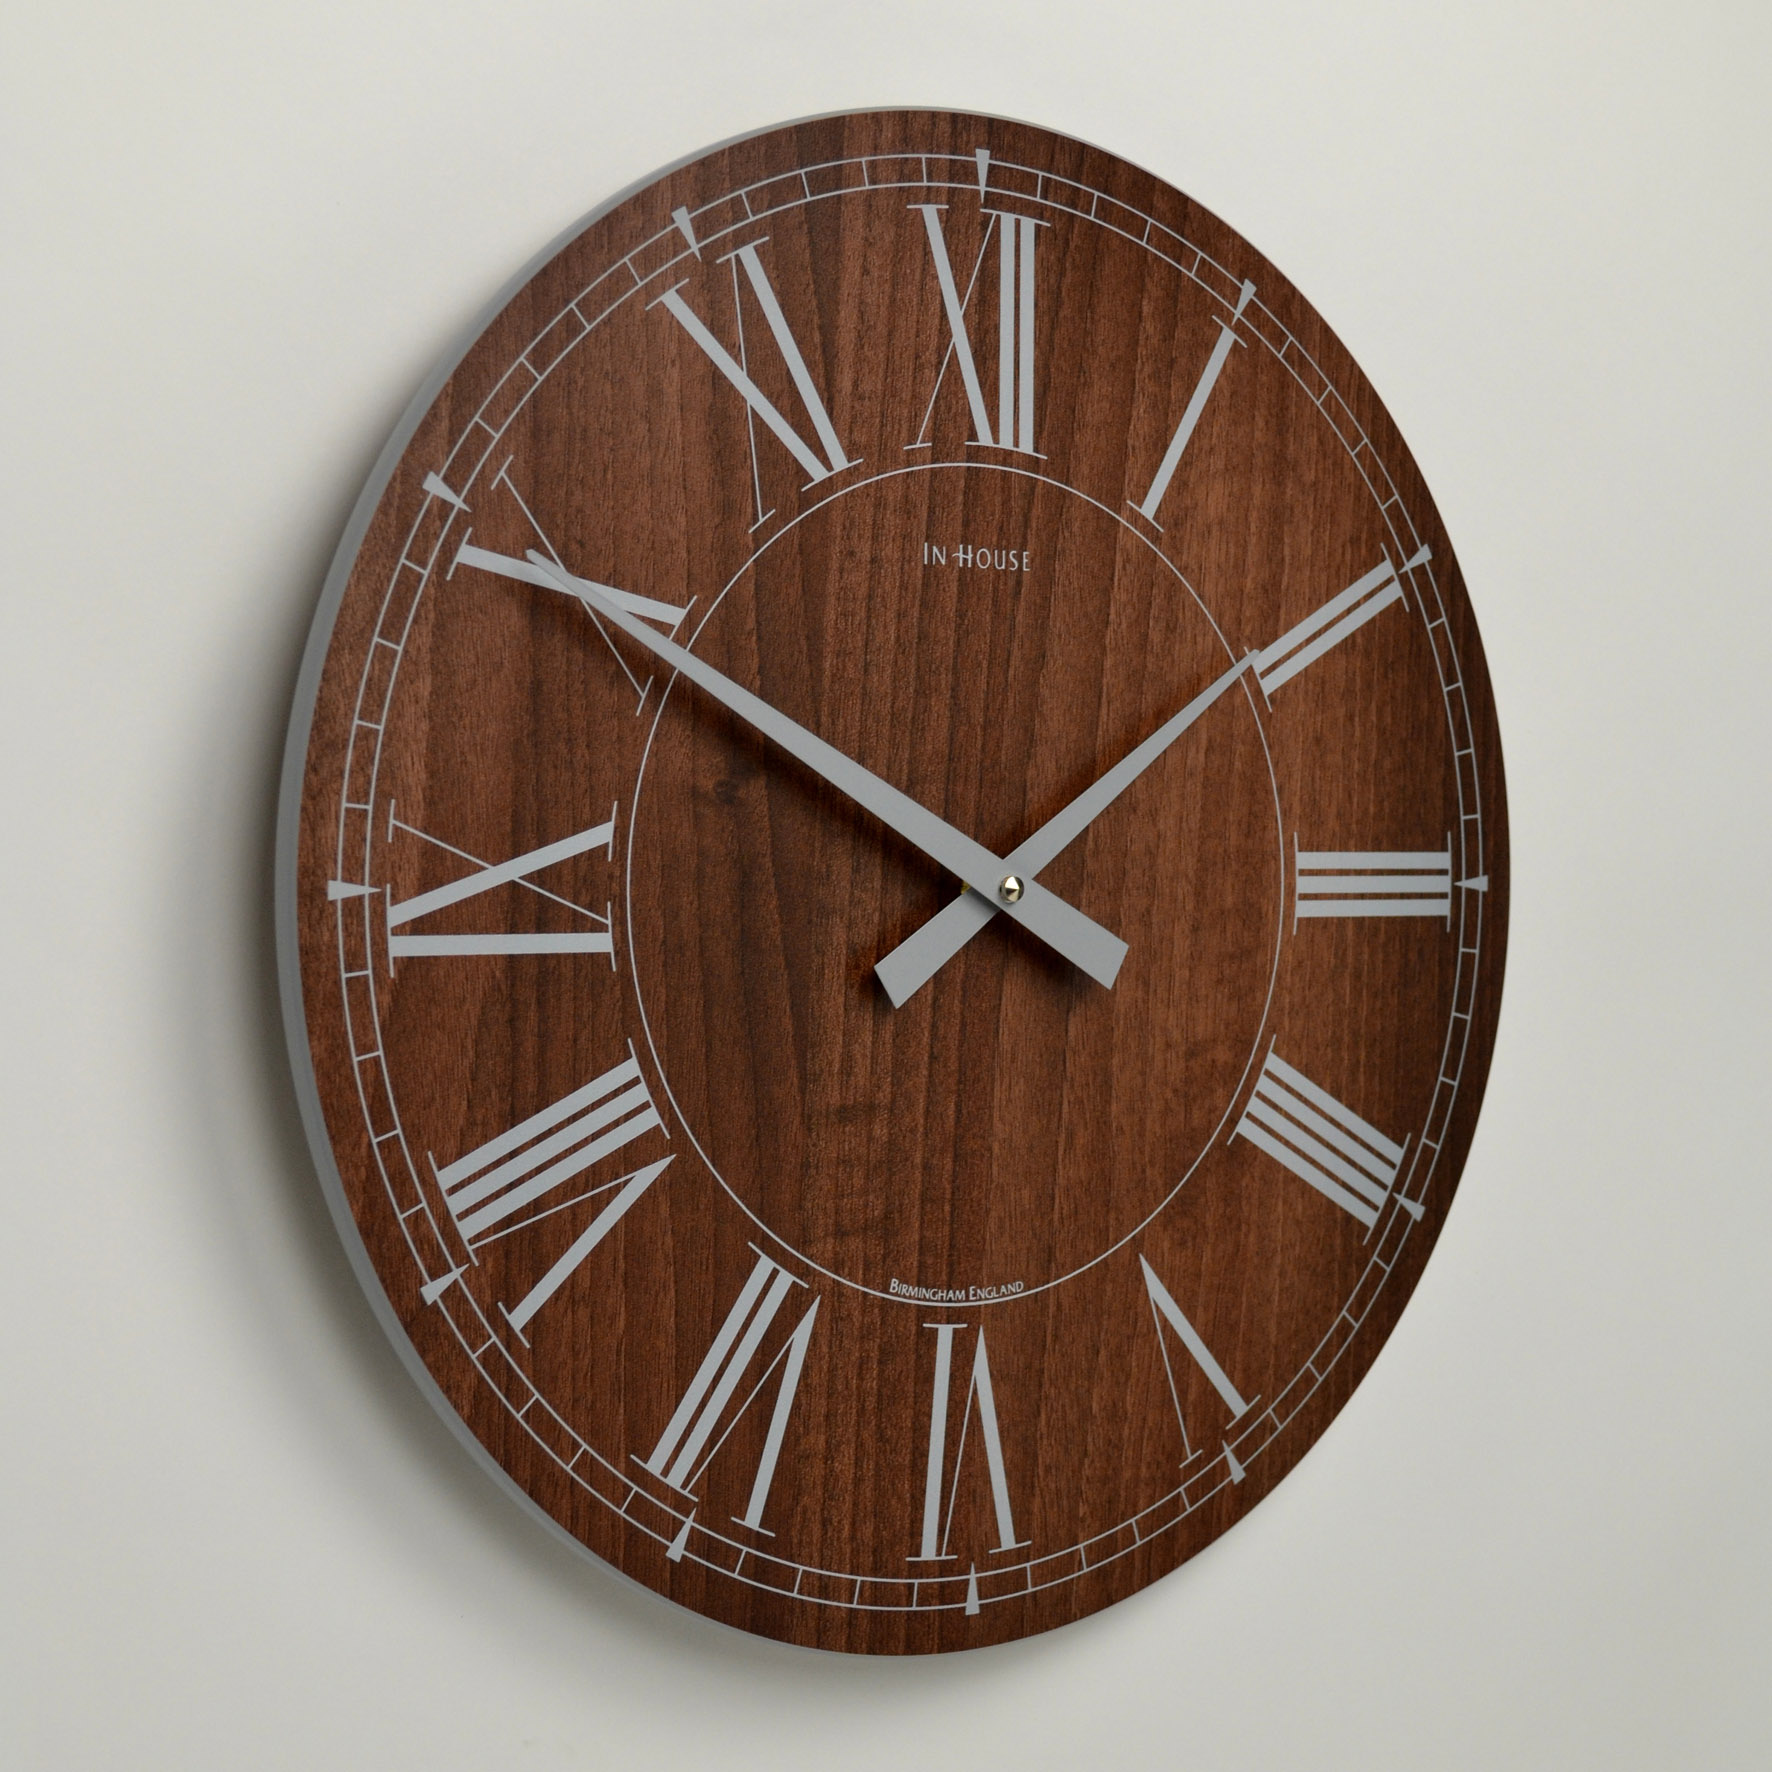 Inhouse Clocks | handmade in England | large walnut wall clock